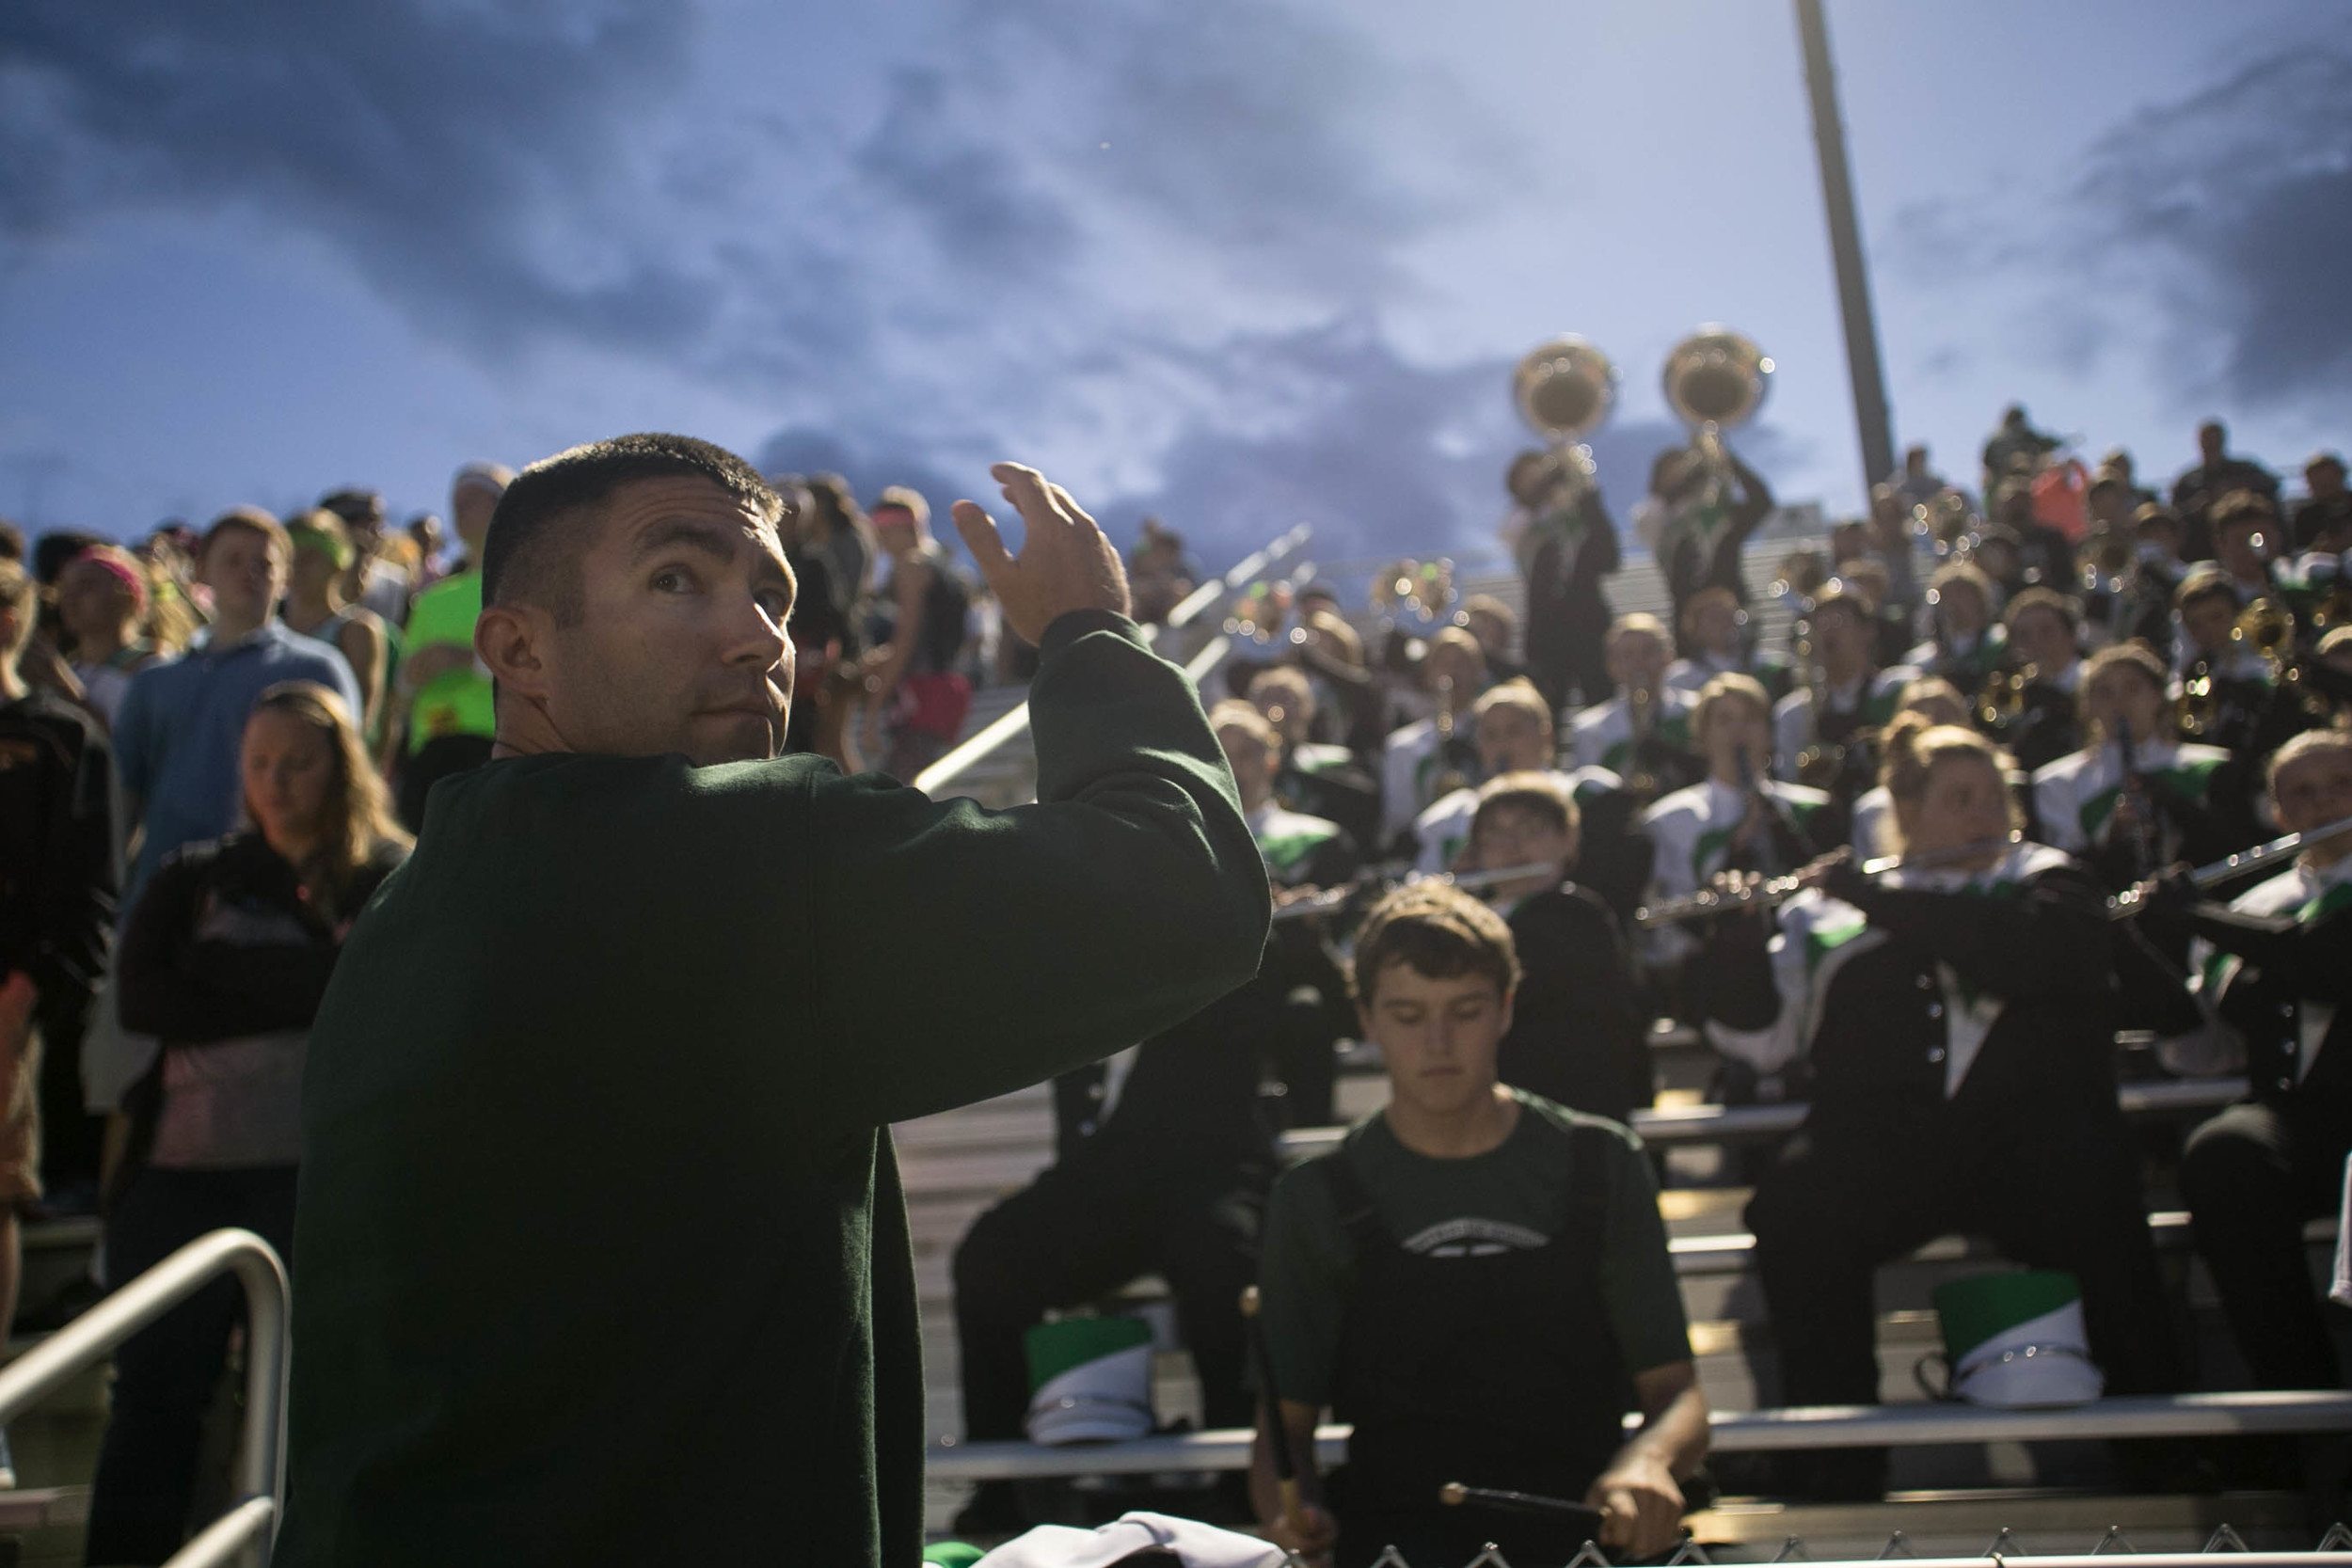 Band director Jay Emmert looks to the scoreboard as he direct's North High School's band during a football game in September of 2015. (Shot for Evansville Courier & Press)